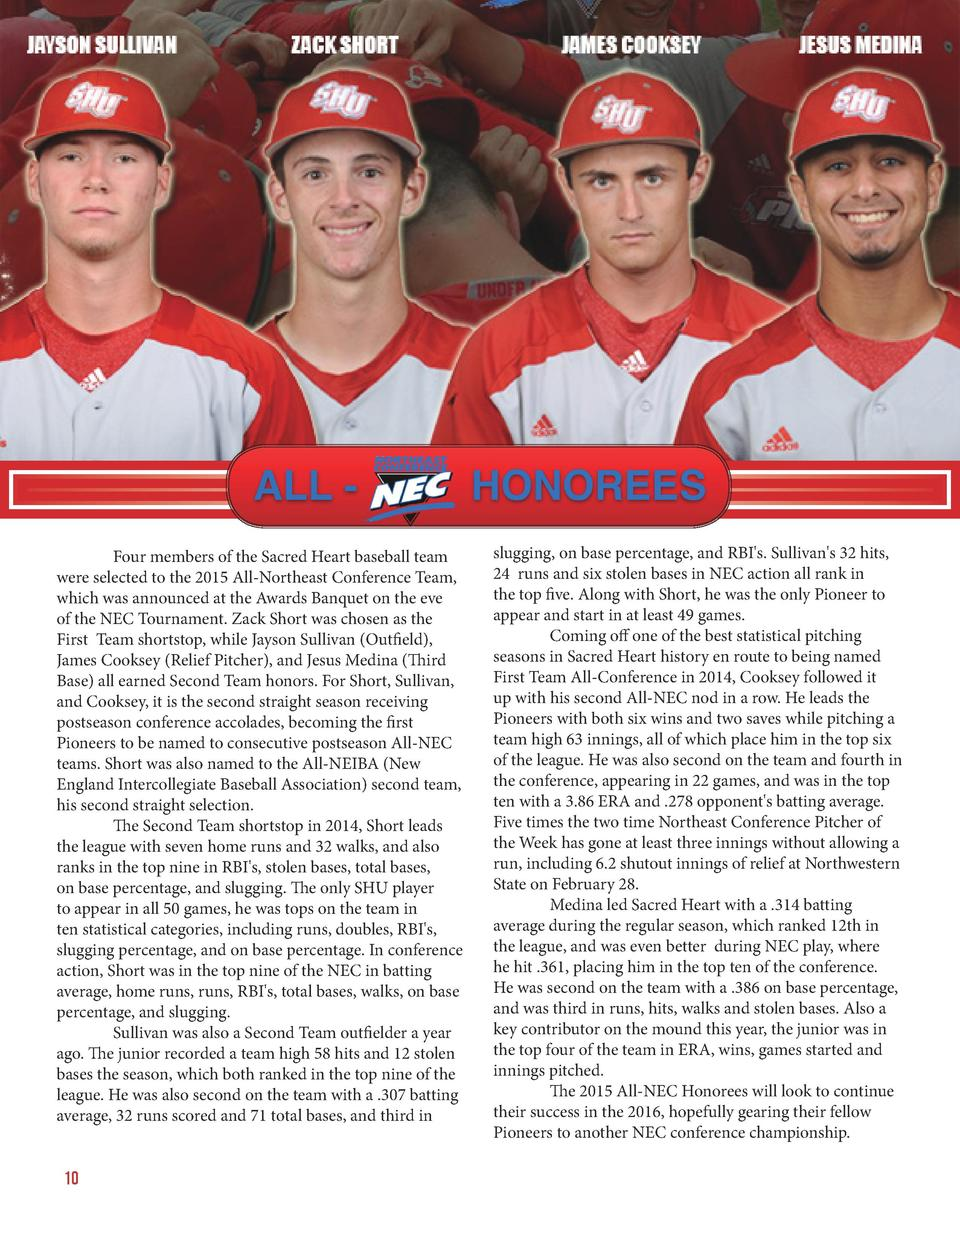 Four members of the Sacred Heart baseball team were selected to the 2015 All-Northeast Conference Team, which was announ...